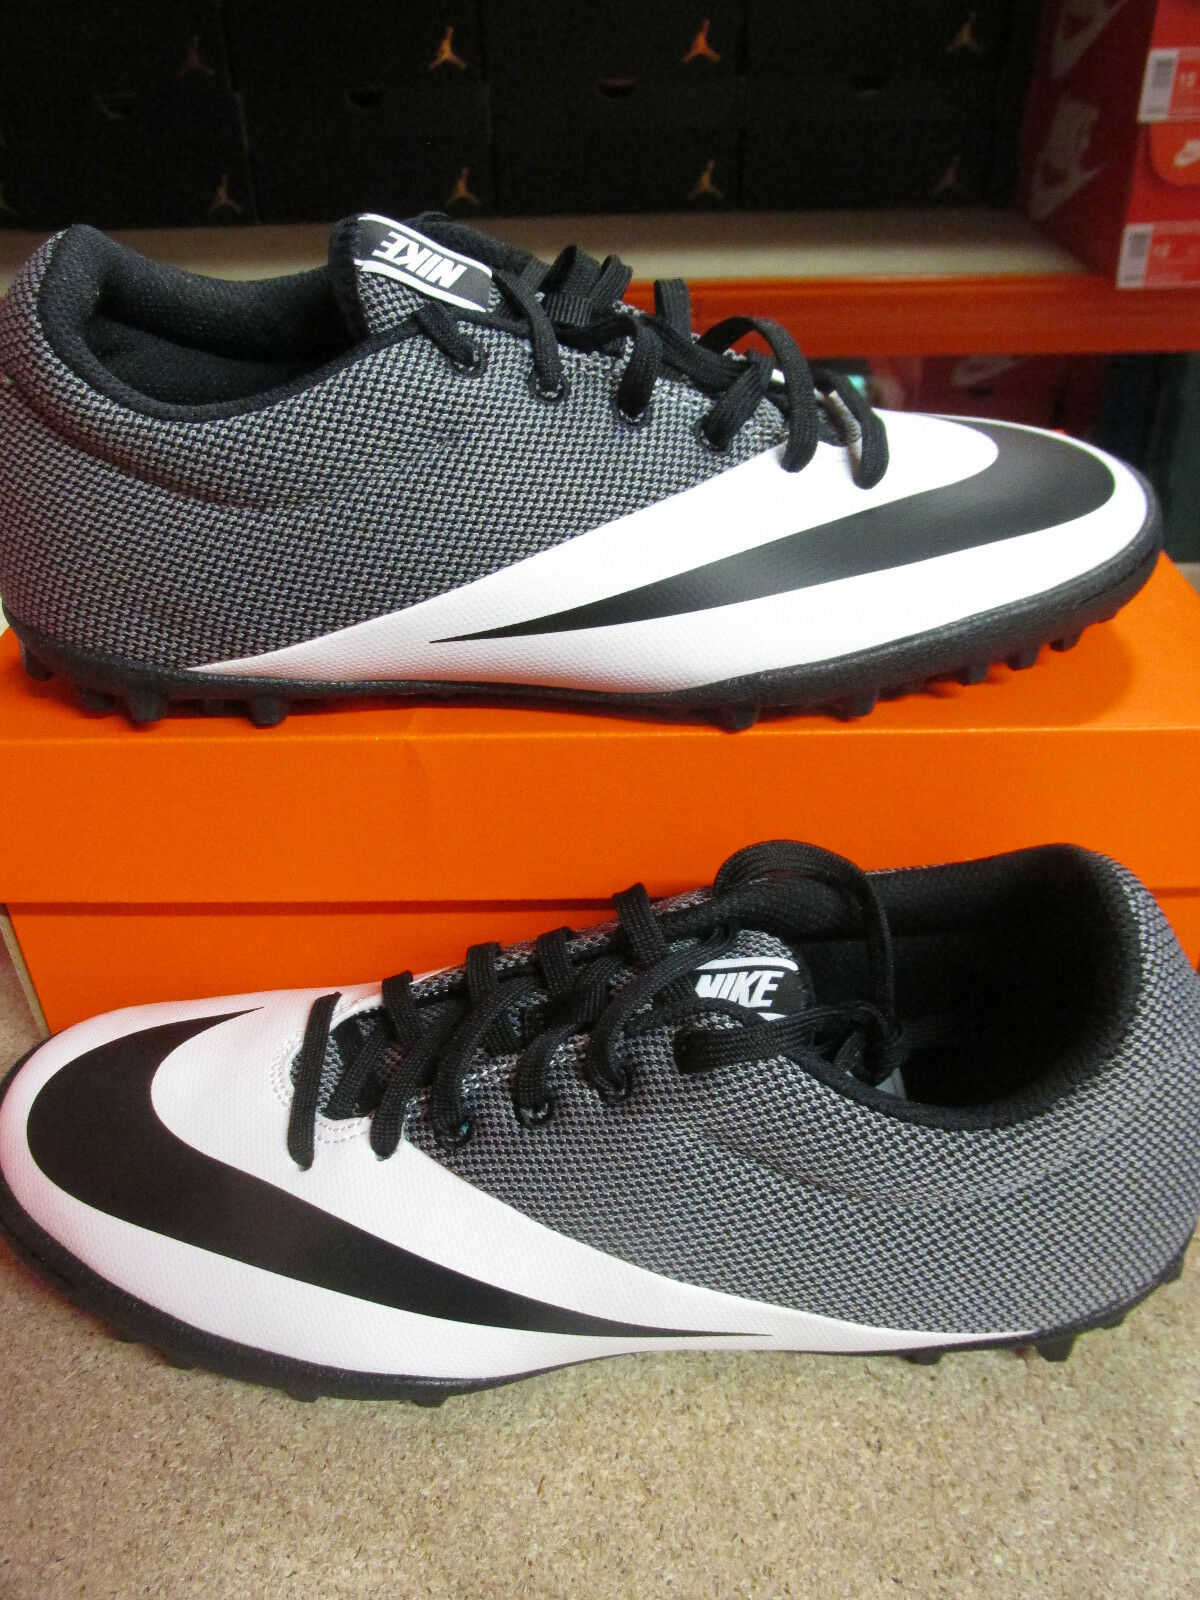 Nike MercurialX Pro TF Mens Football Boots 725245 100 Soccer Cleats